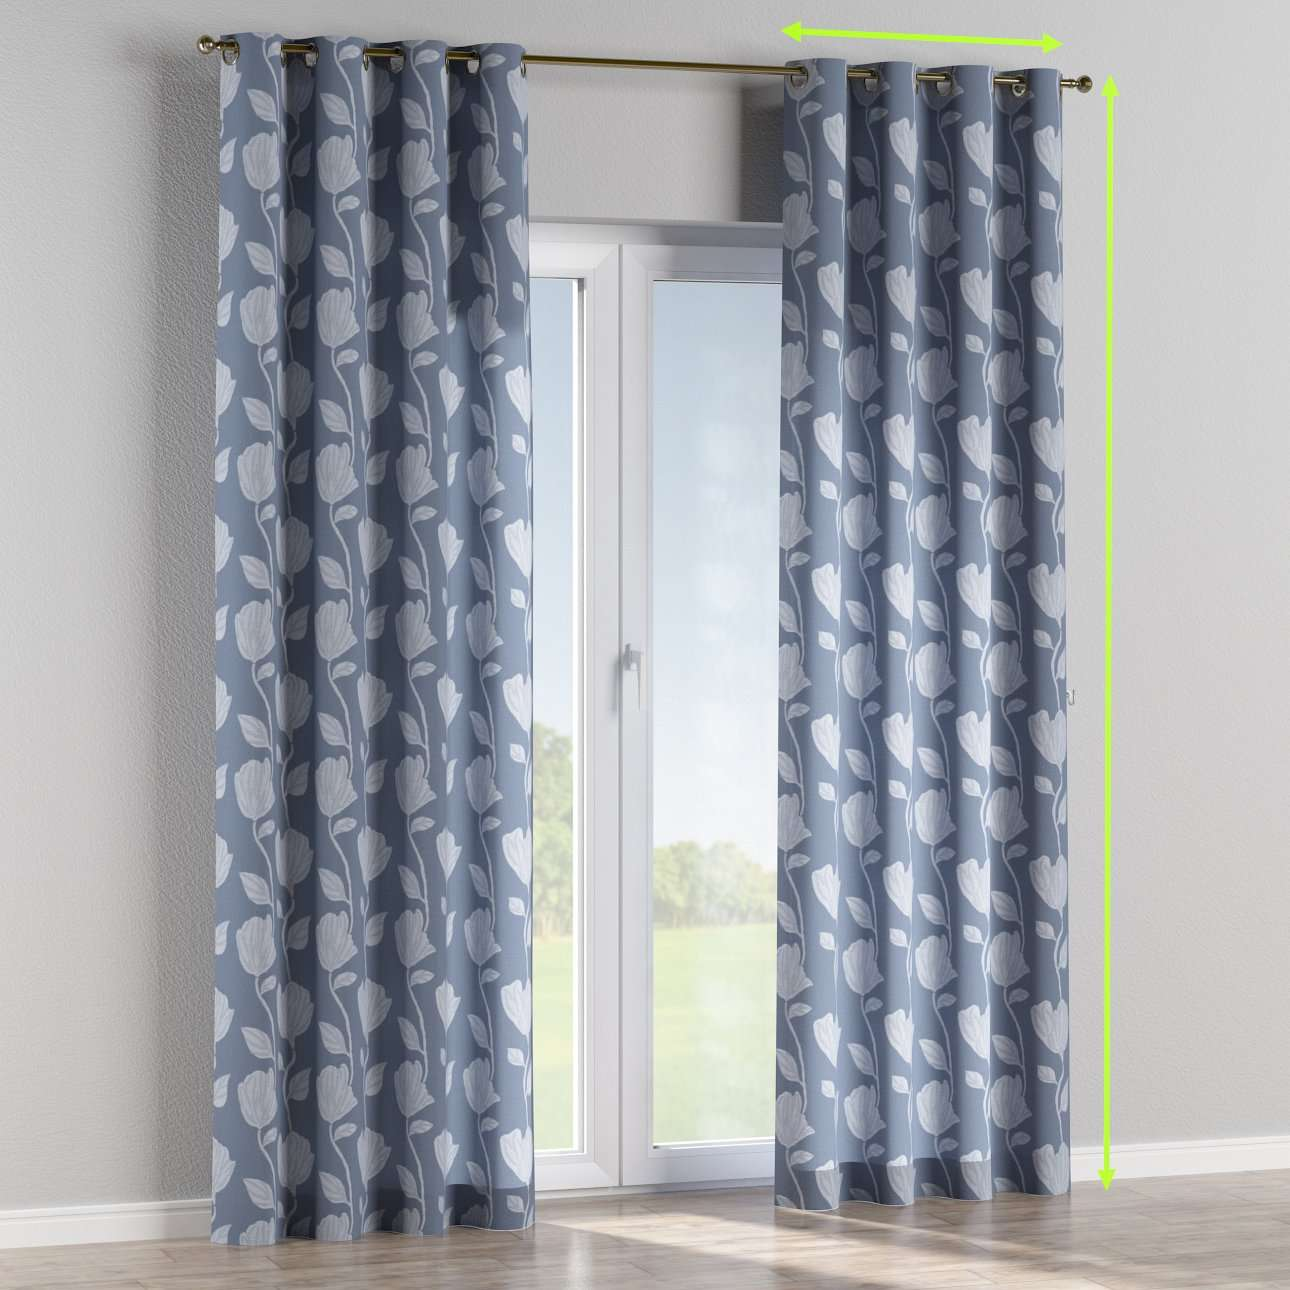 Eyelet lined curtains in collection Venice, fabric: 140-61